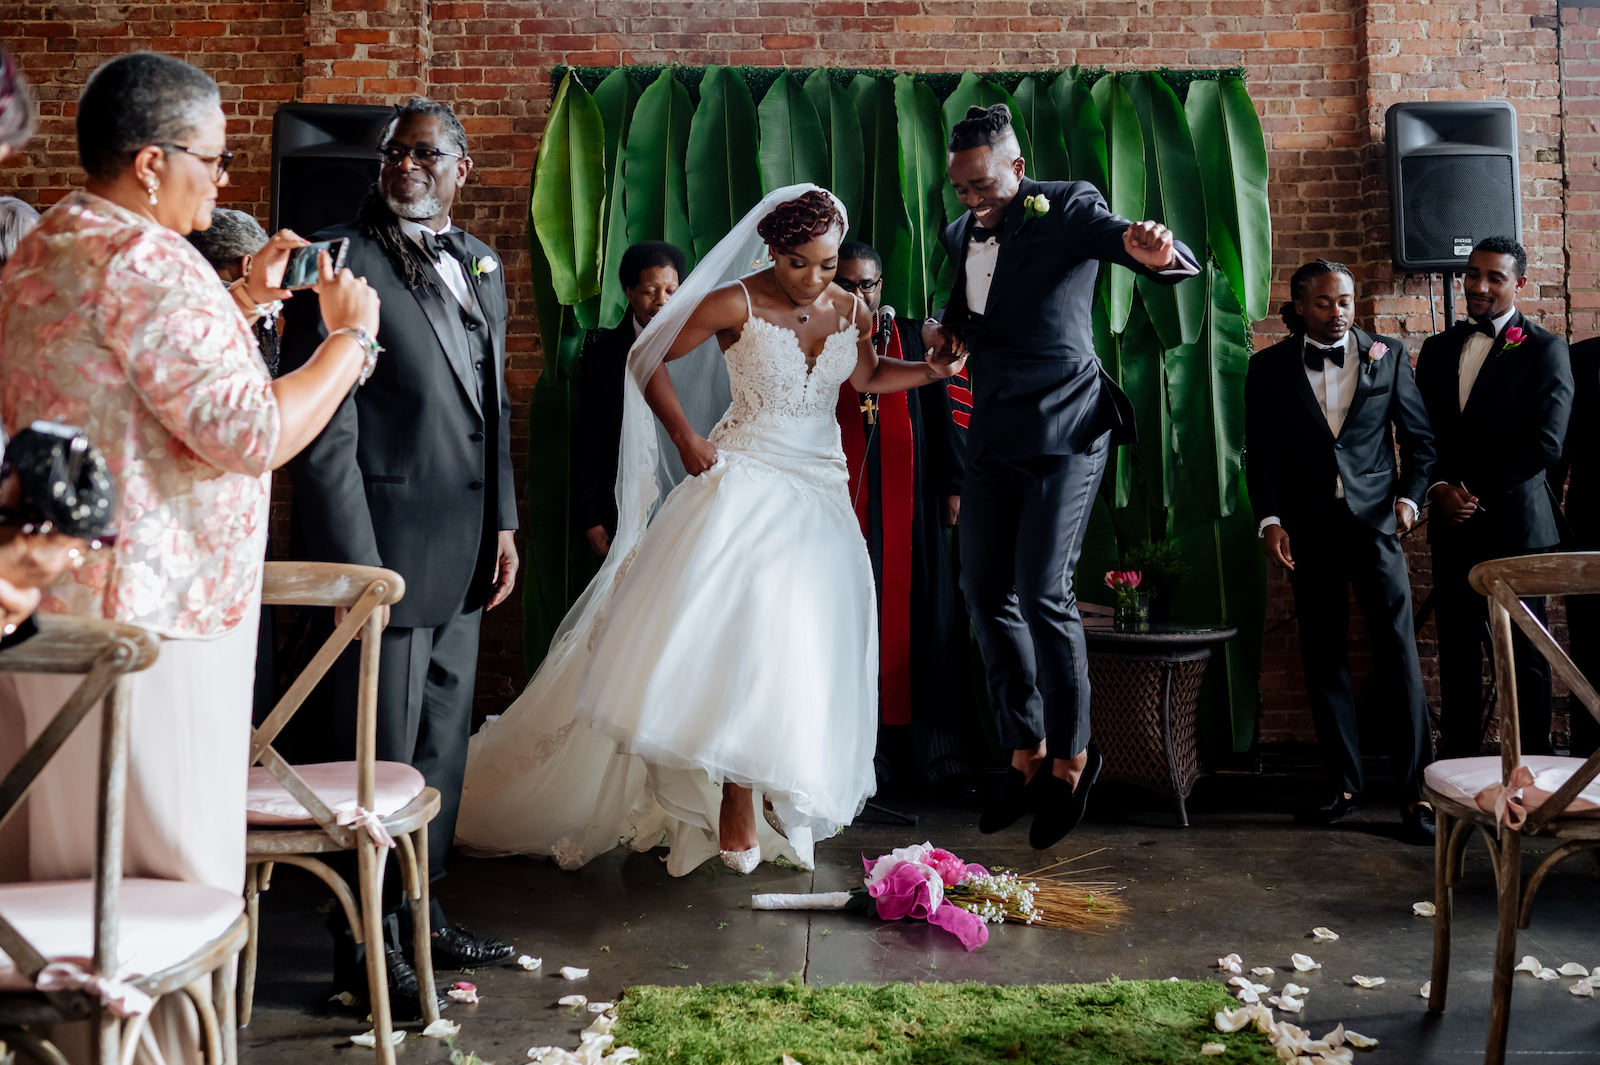 Tampa Wedding Jumping The Broom Tradition   Ivory Spaghetti Strap Scoop Back Lace and Tulle Mermaid Martina Liana Wedding Dress Bridal Gown with Cathedral Length Long Lace Edge Veil   Groom in Modern Navy Suit with Black Satin Lapel   Modern Ceremony Backdrop with Tropical Palm Leaves